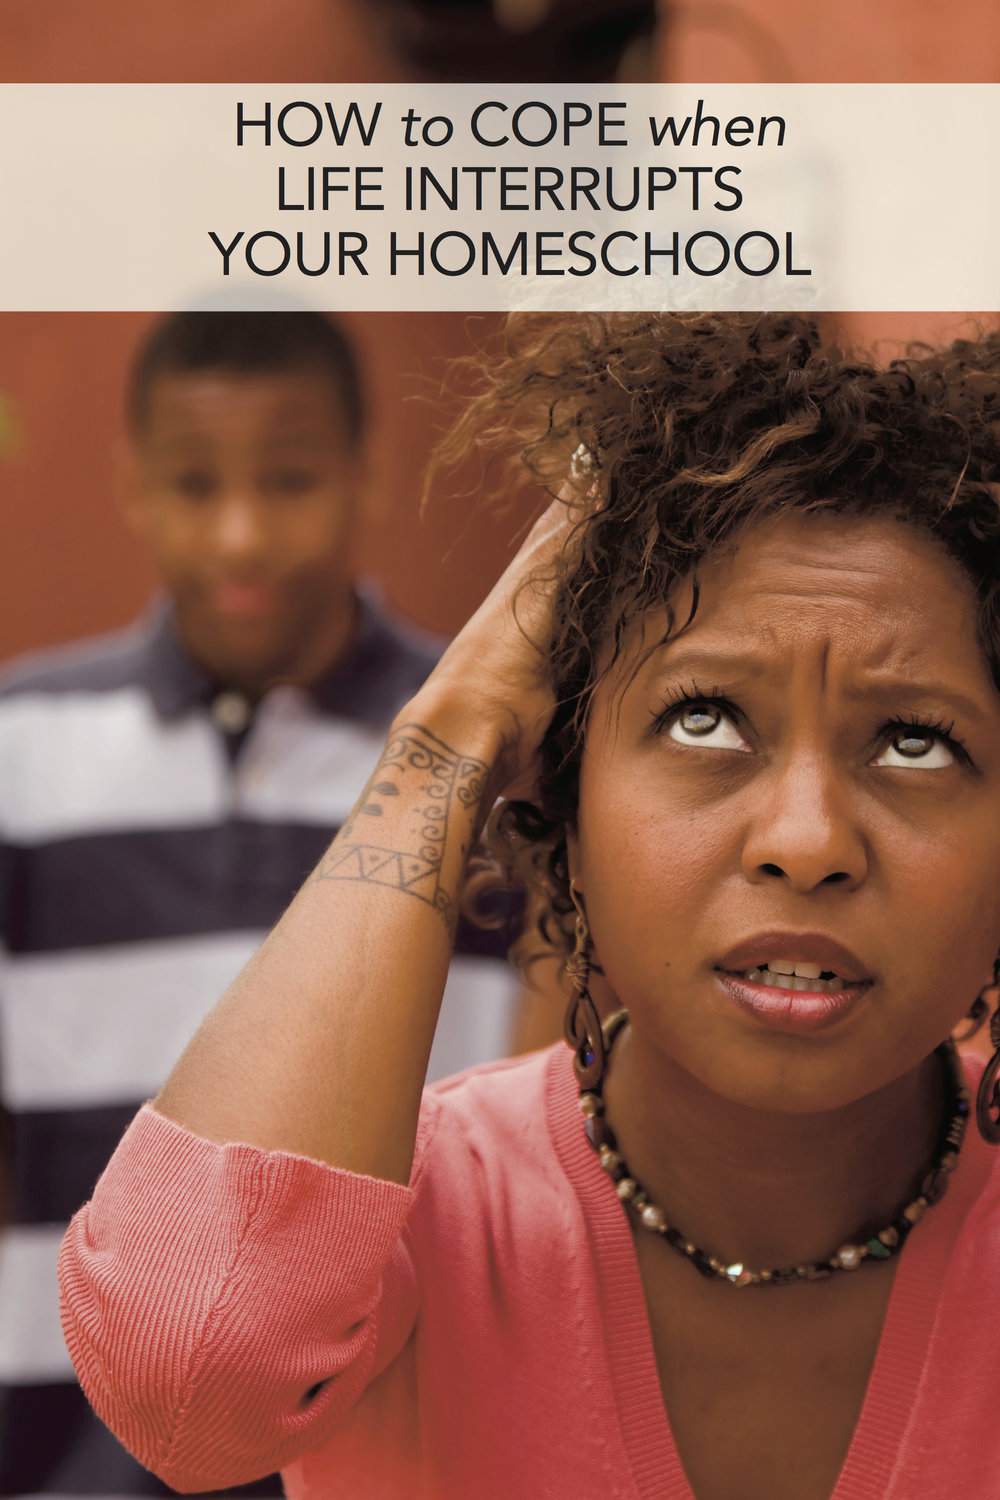 How to Cope When Life Interrupts Your Homeschool